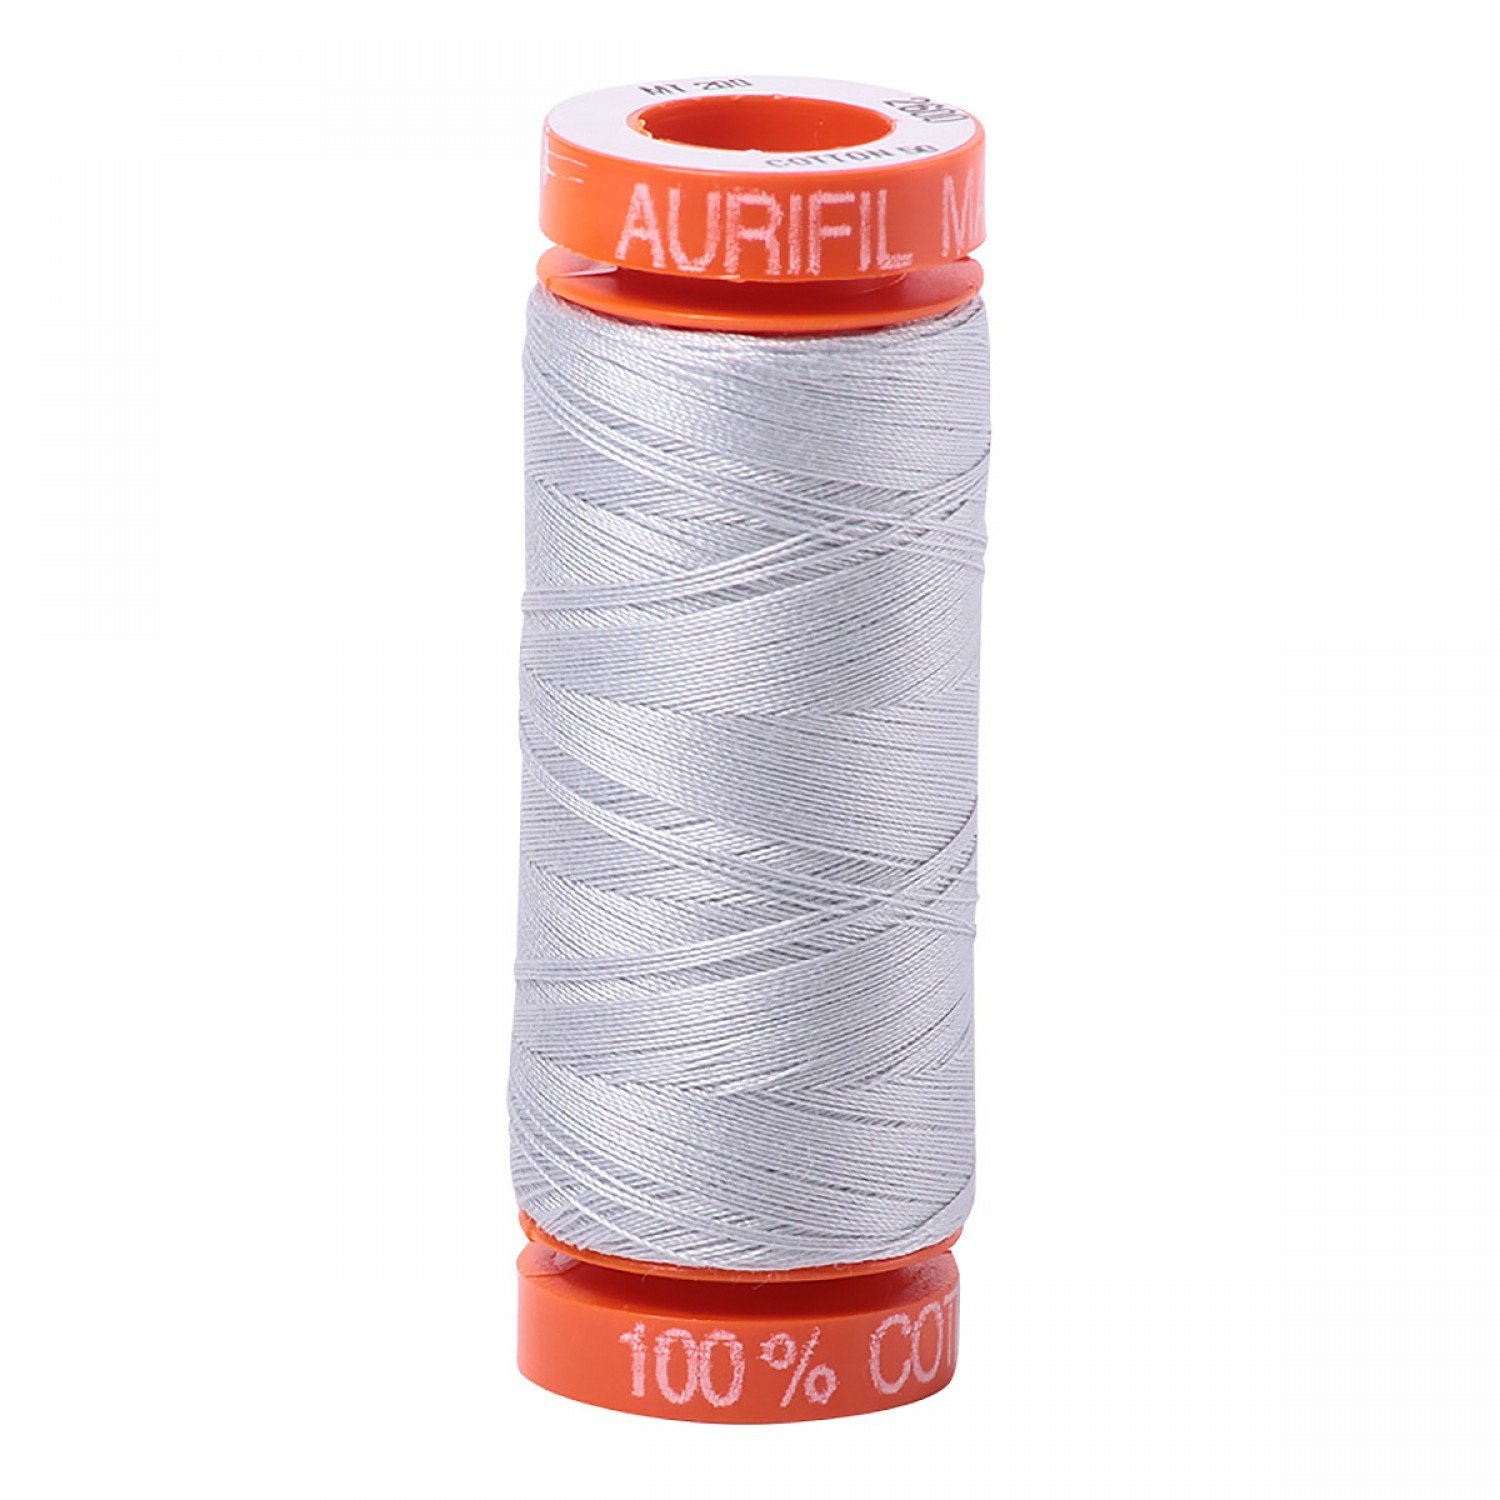 50 wt Aurifil - AS2600 - Dove